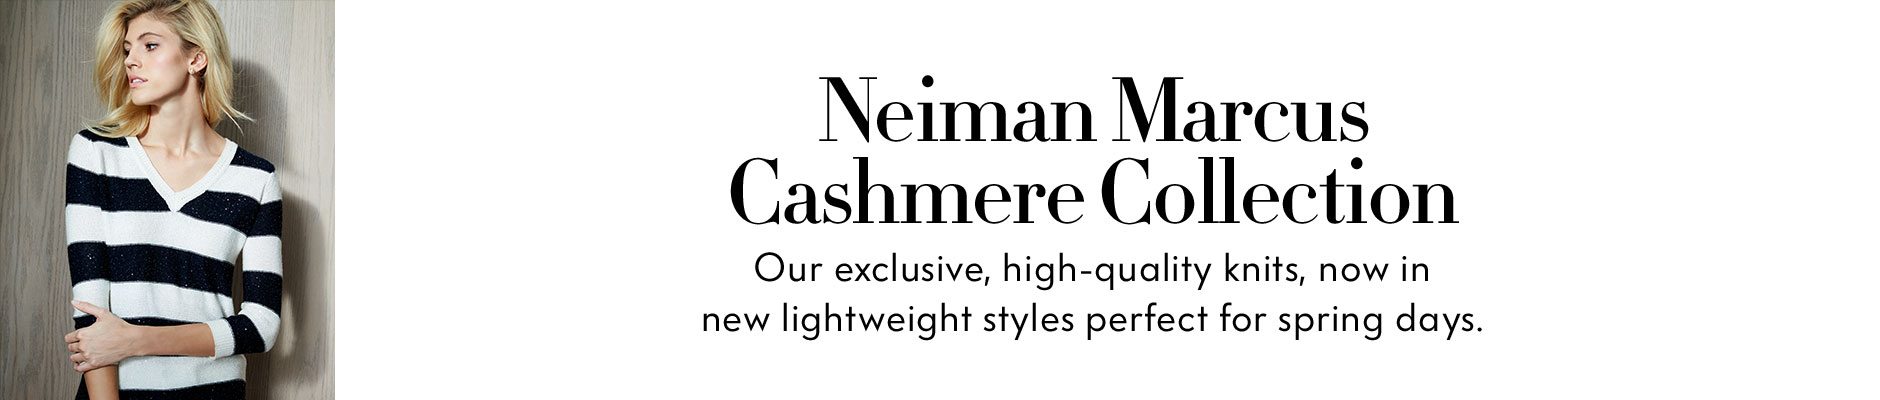 Neiman Marcus Cashmere Collection - Our exclusive, high-quality knits, now in new lightweight styles perfect for spring days.